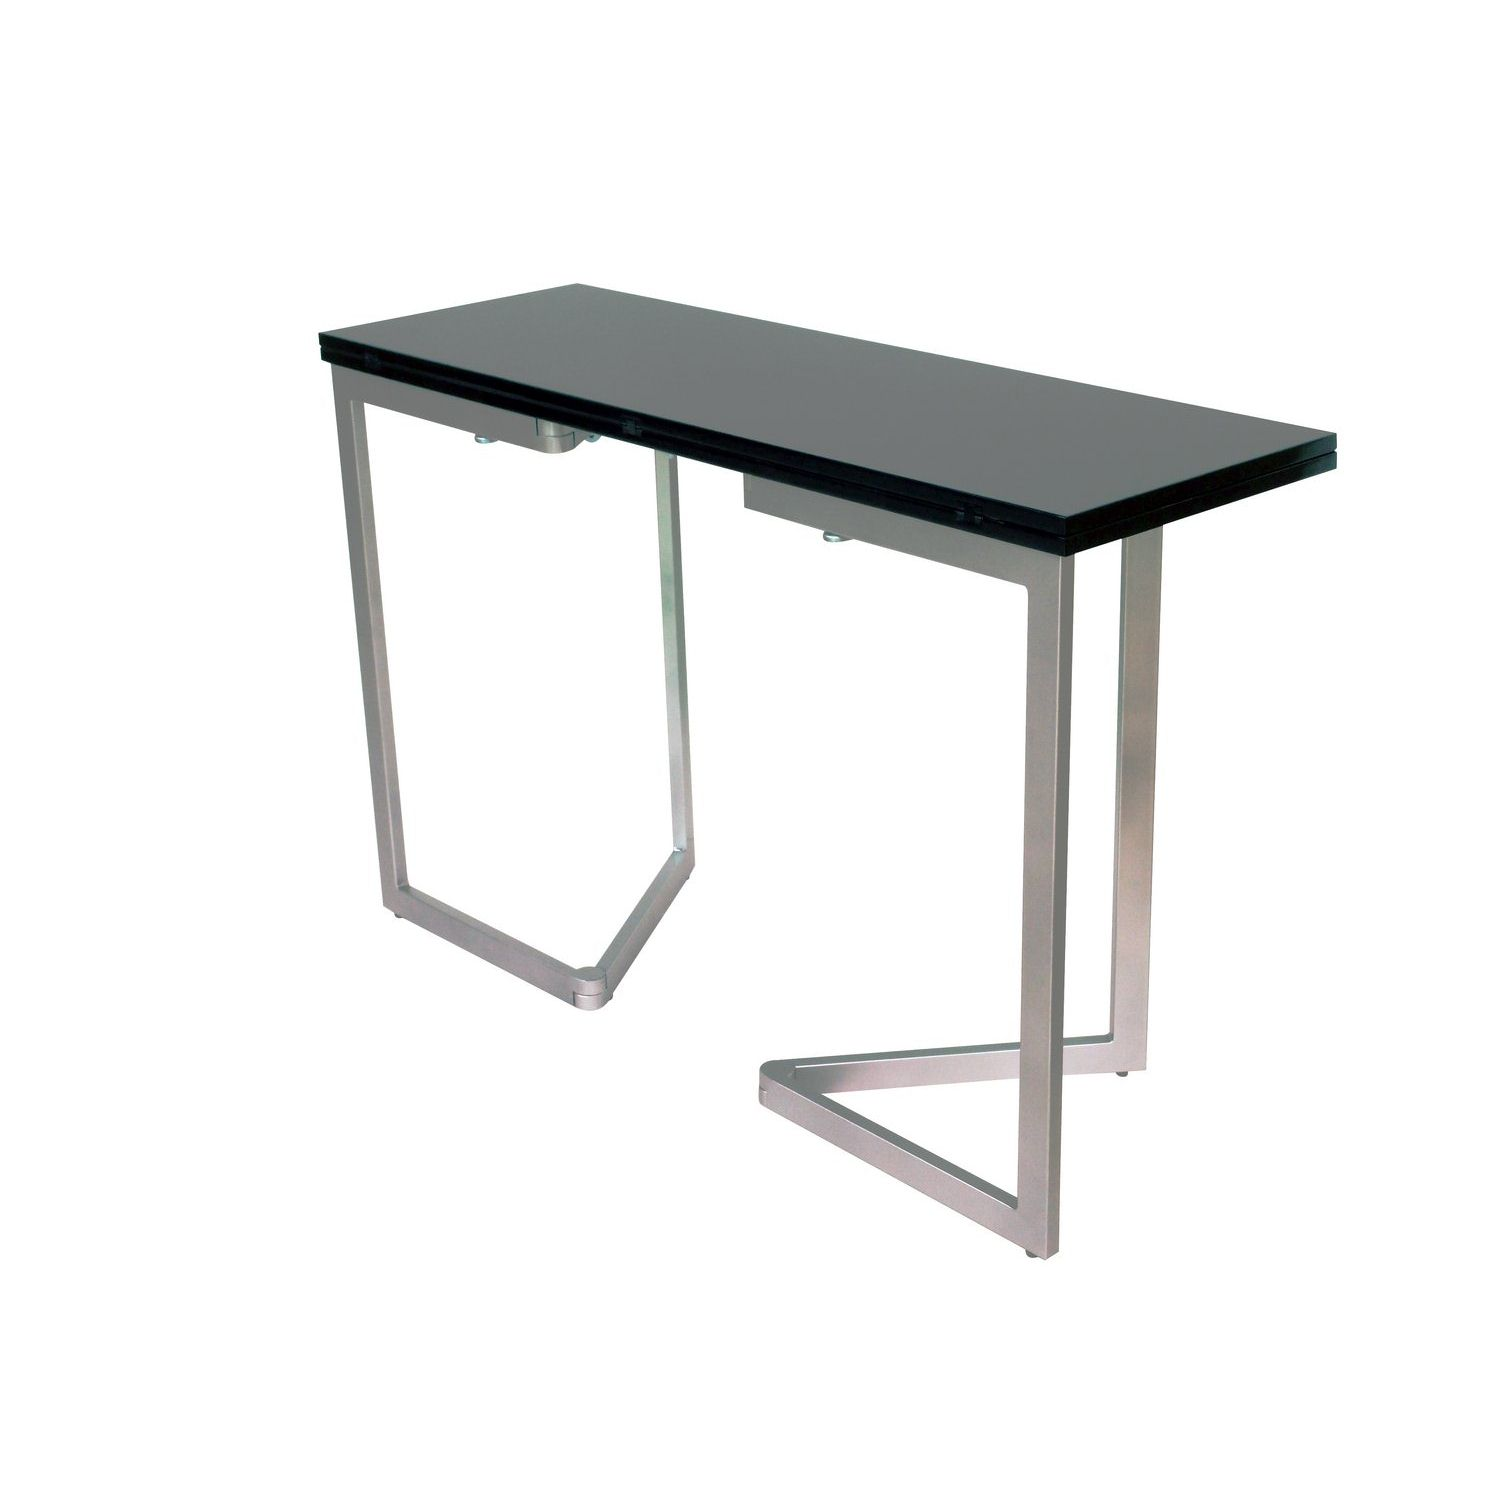 92 table console extensible noir table console. Black Bedroom Furniture Sets. Home Design Ideas